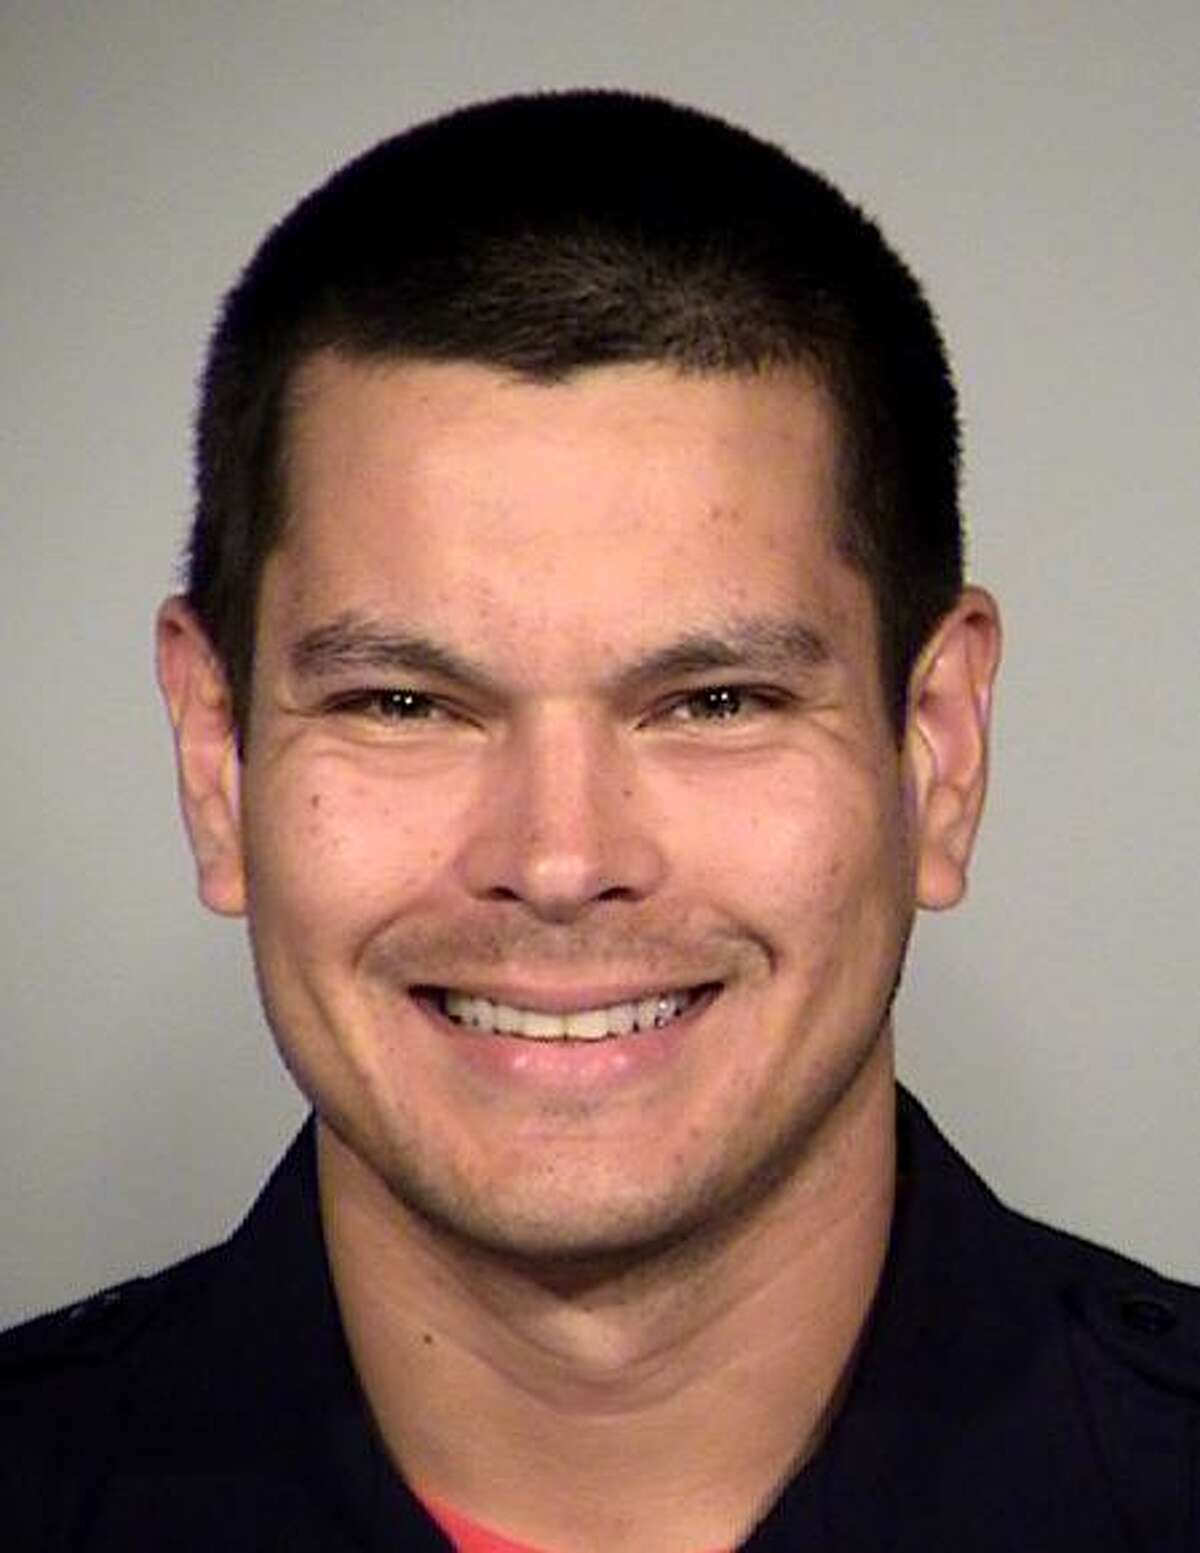 Matthew Luckhurst, the San Antonio police officer who was fired for providing a feces sandwich to a homeless man, was given a second indefinite suspension in November for defecating in a woman's bathroom stall and spreading a brown substance on the toilet seat.